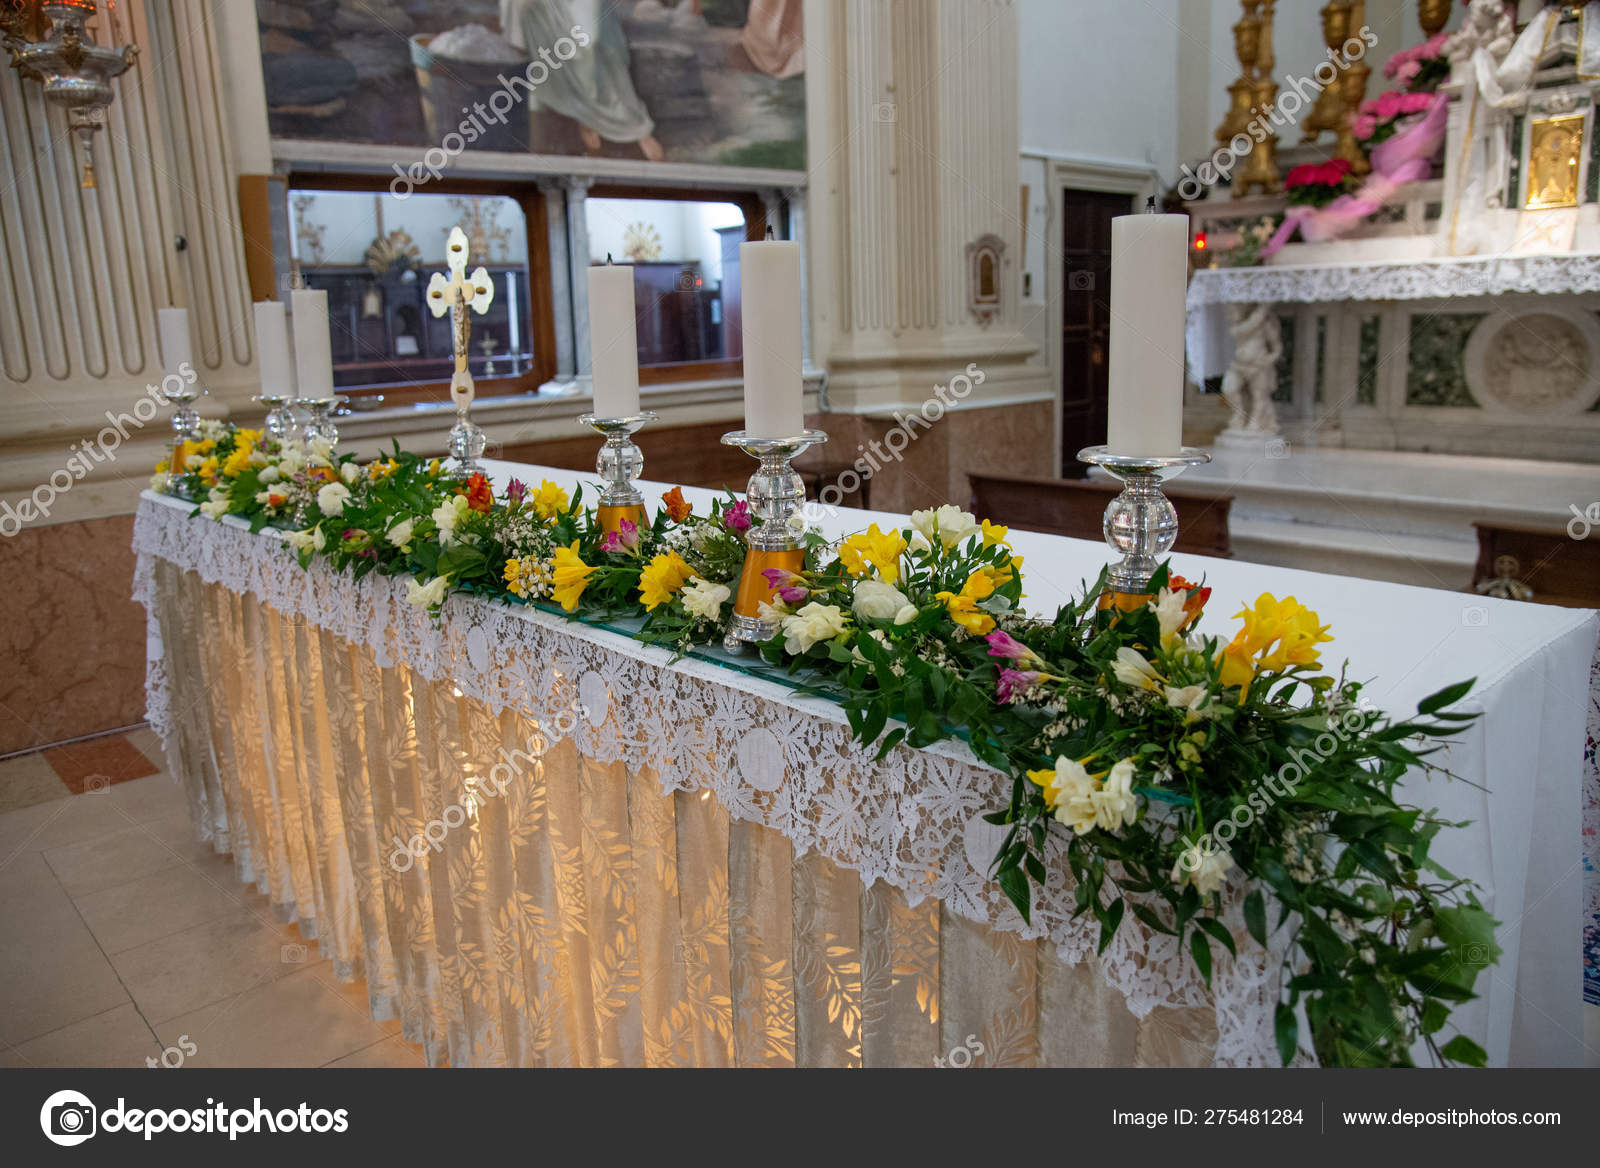 Flower Arrangement Altar Church Colorful Bouquet Flowers Celebration Stock Photo C Roza Sean 275481284